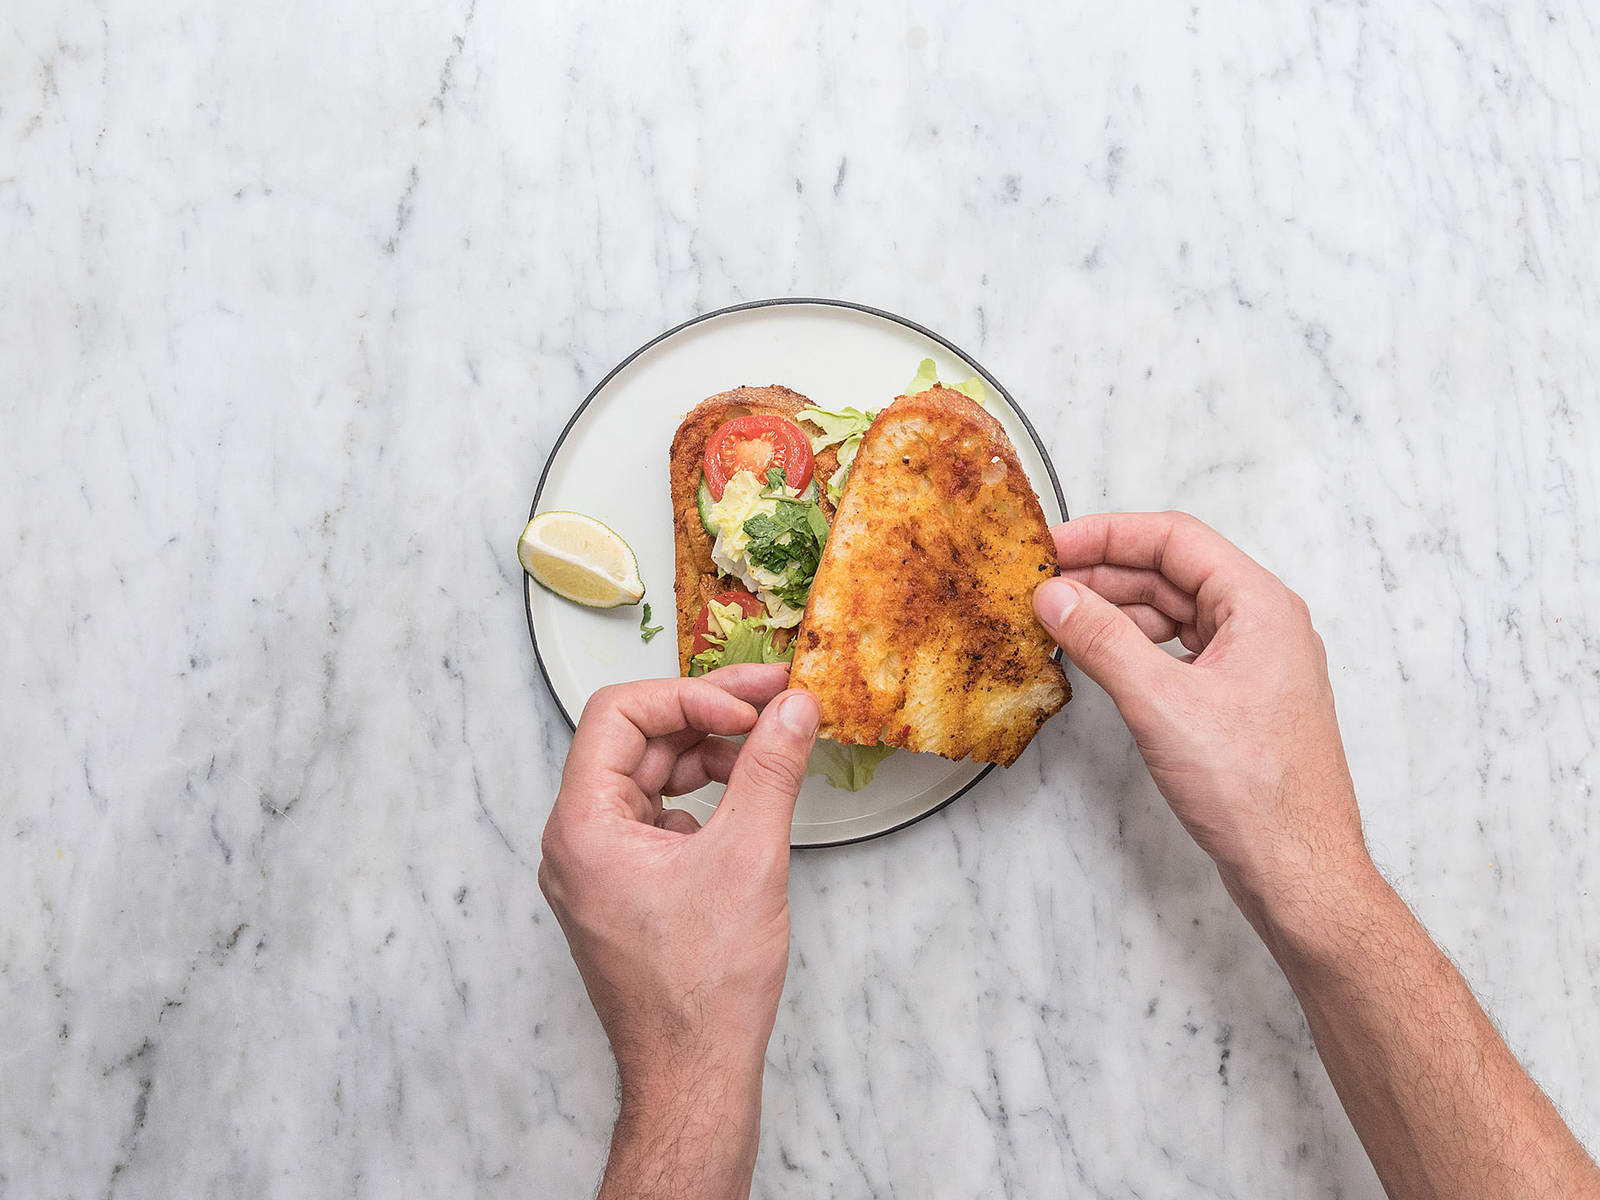 Transfer bread slices to a serving plate and assemble sandwich with lettuce, tomato, cucumber, fresh herbs, a squeeze of lime, and top with chicken tikka. Enjoy!